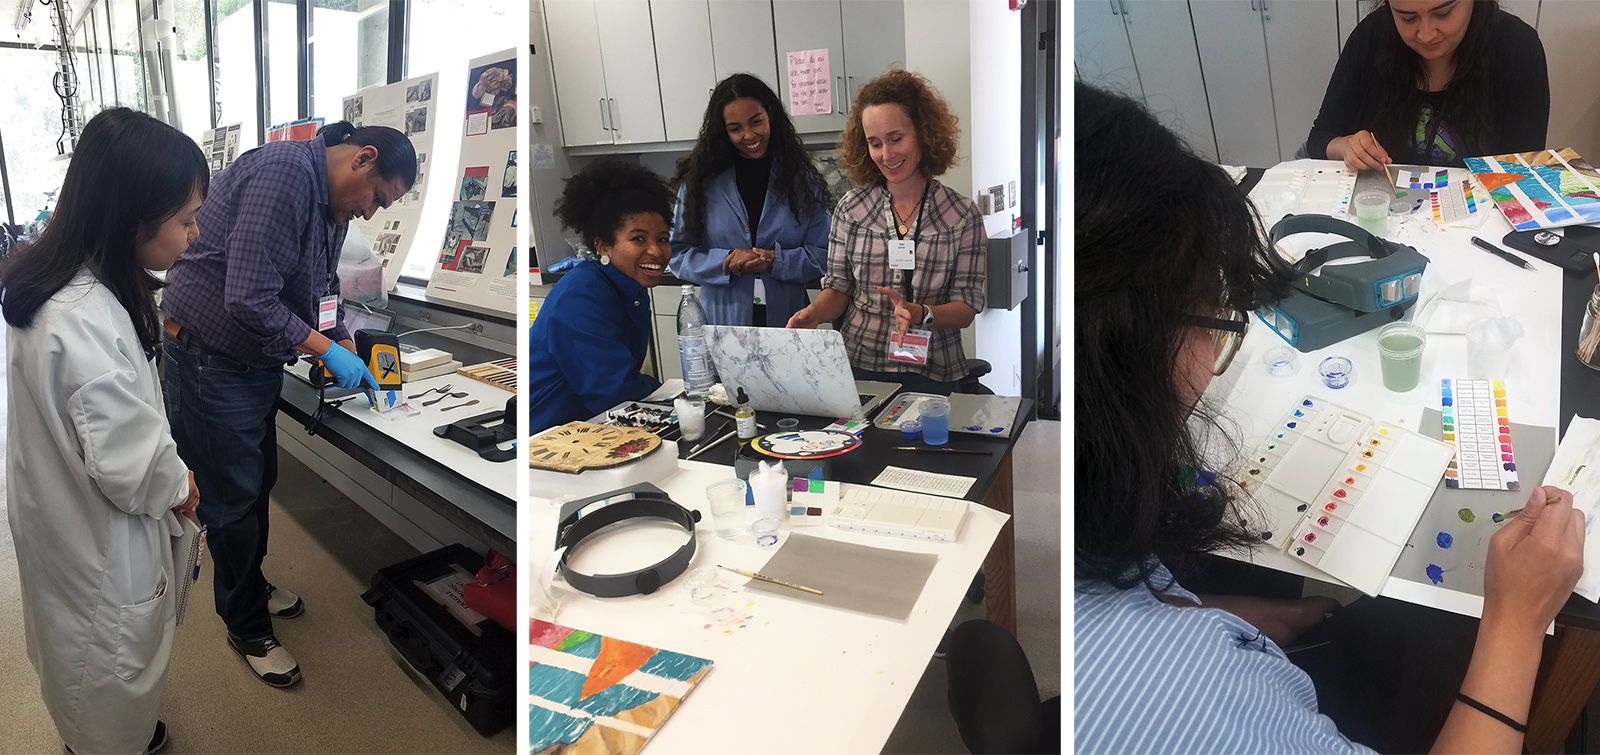 Three different images, each showing students learning different conservation techniques in the lab.